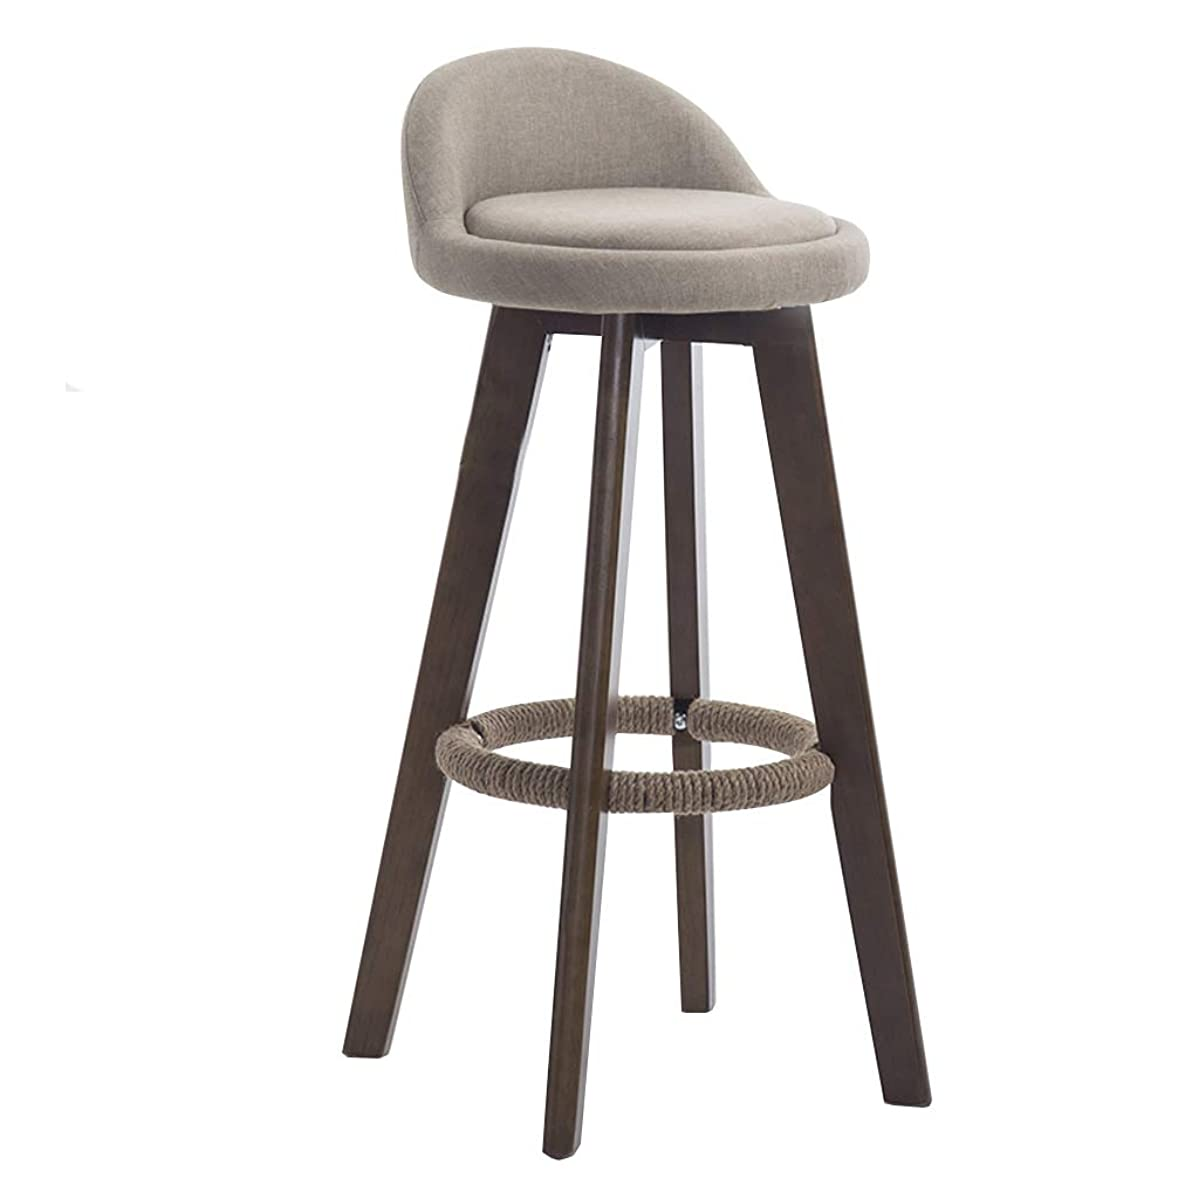 CHY Wooden Bar Stool, 360° Rotation Bar Chair, Burlap Chair Low Back Footstool, Home Kitchen Breakfast Counter High Bench, 4 Colors 63cm/73cm/83cm Simple bar Stool (Color : Beige, Size : 63cm)